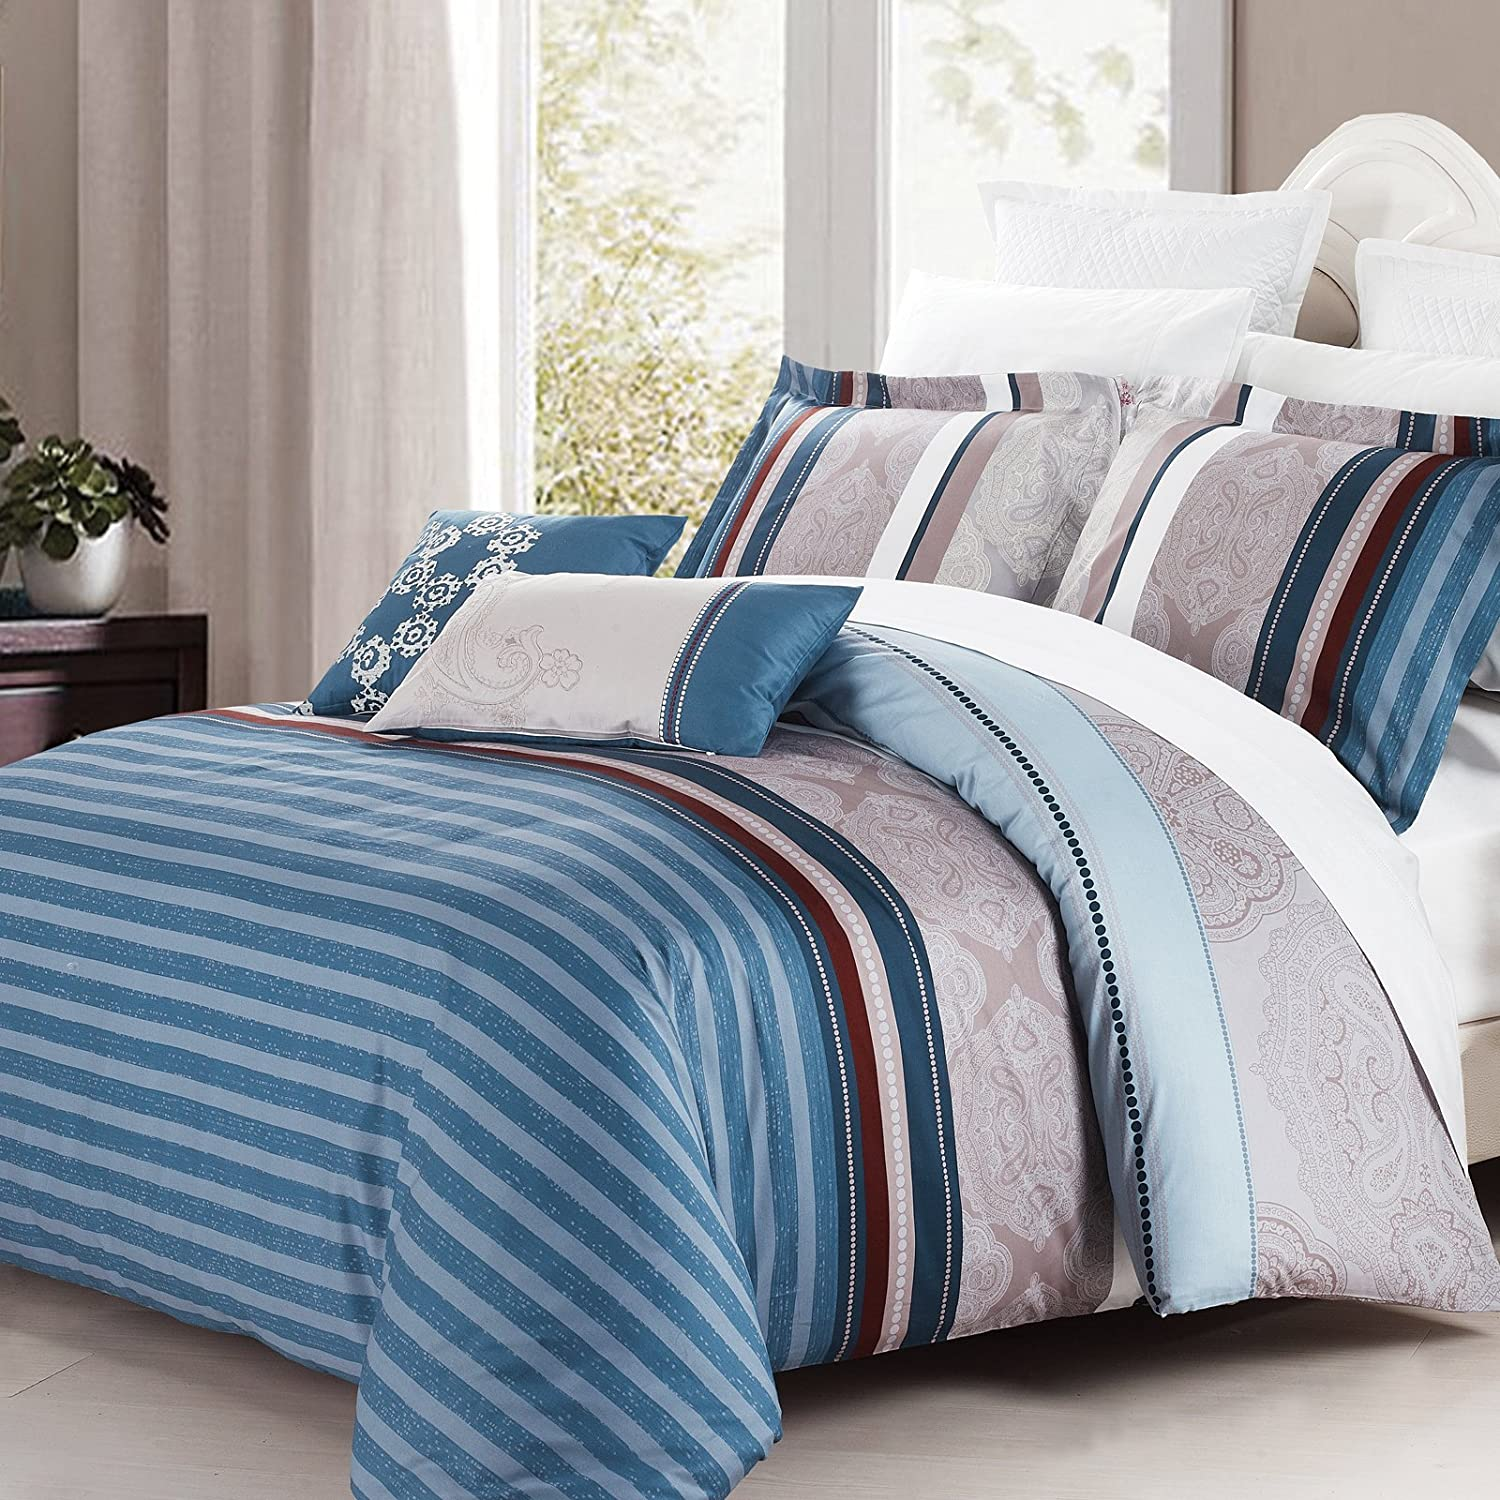 North Home Brooks 4-Piece Duvet Cover Set, Queen